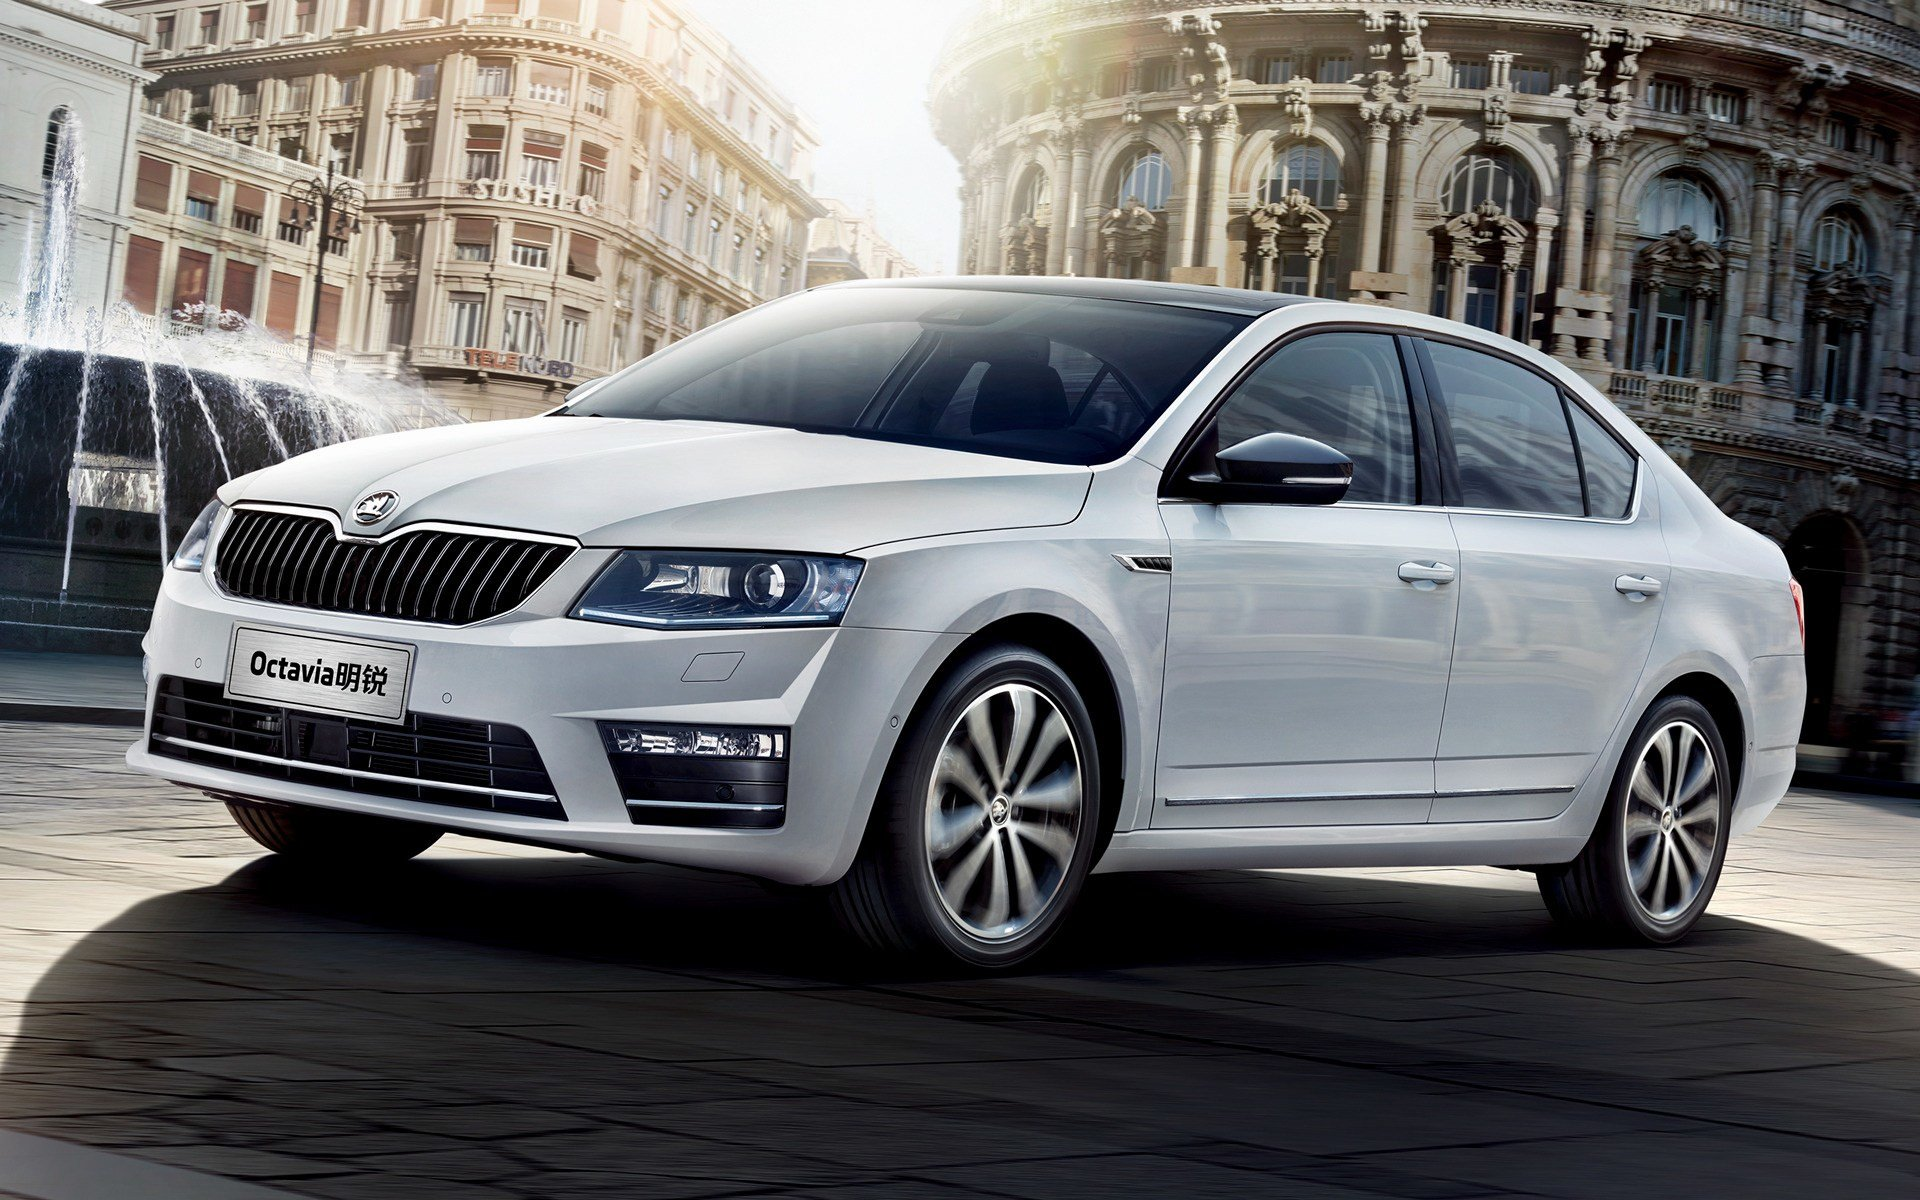 Latest Skoda Octavia 2016 Cn Wallpapers And Hd Images Car Pixel Free Download